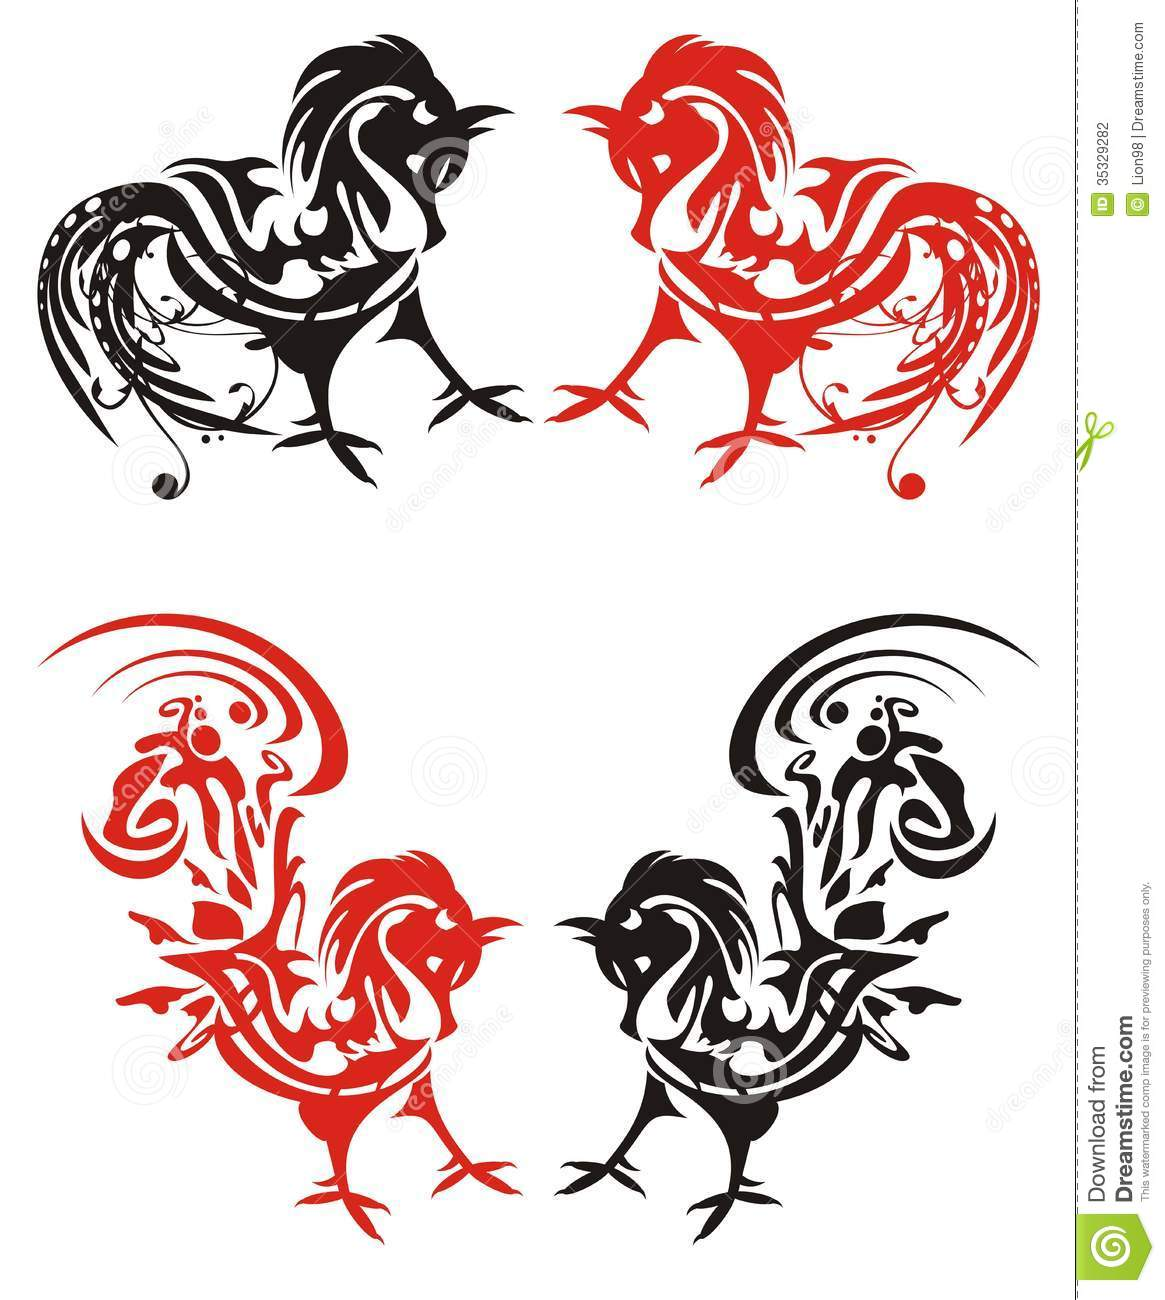 Red And Black Tribal Rooster Tattoos Designs